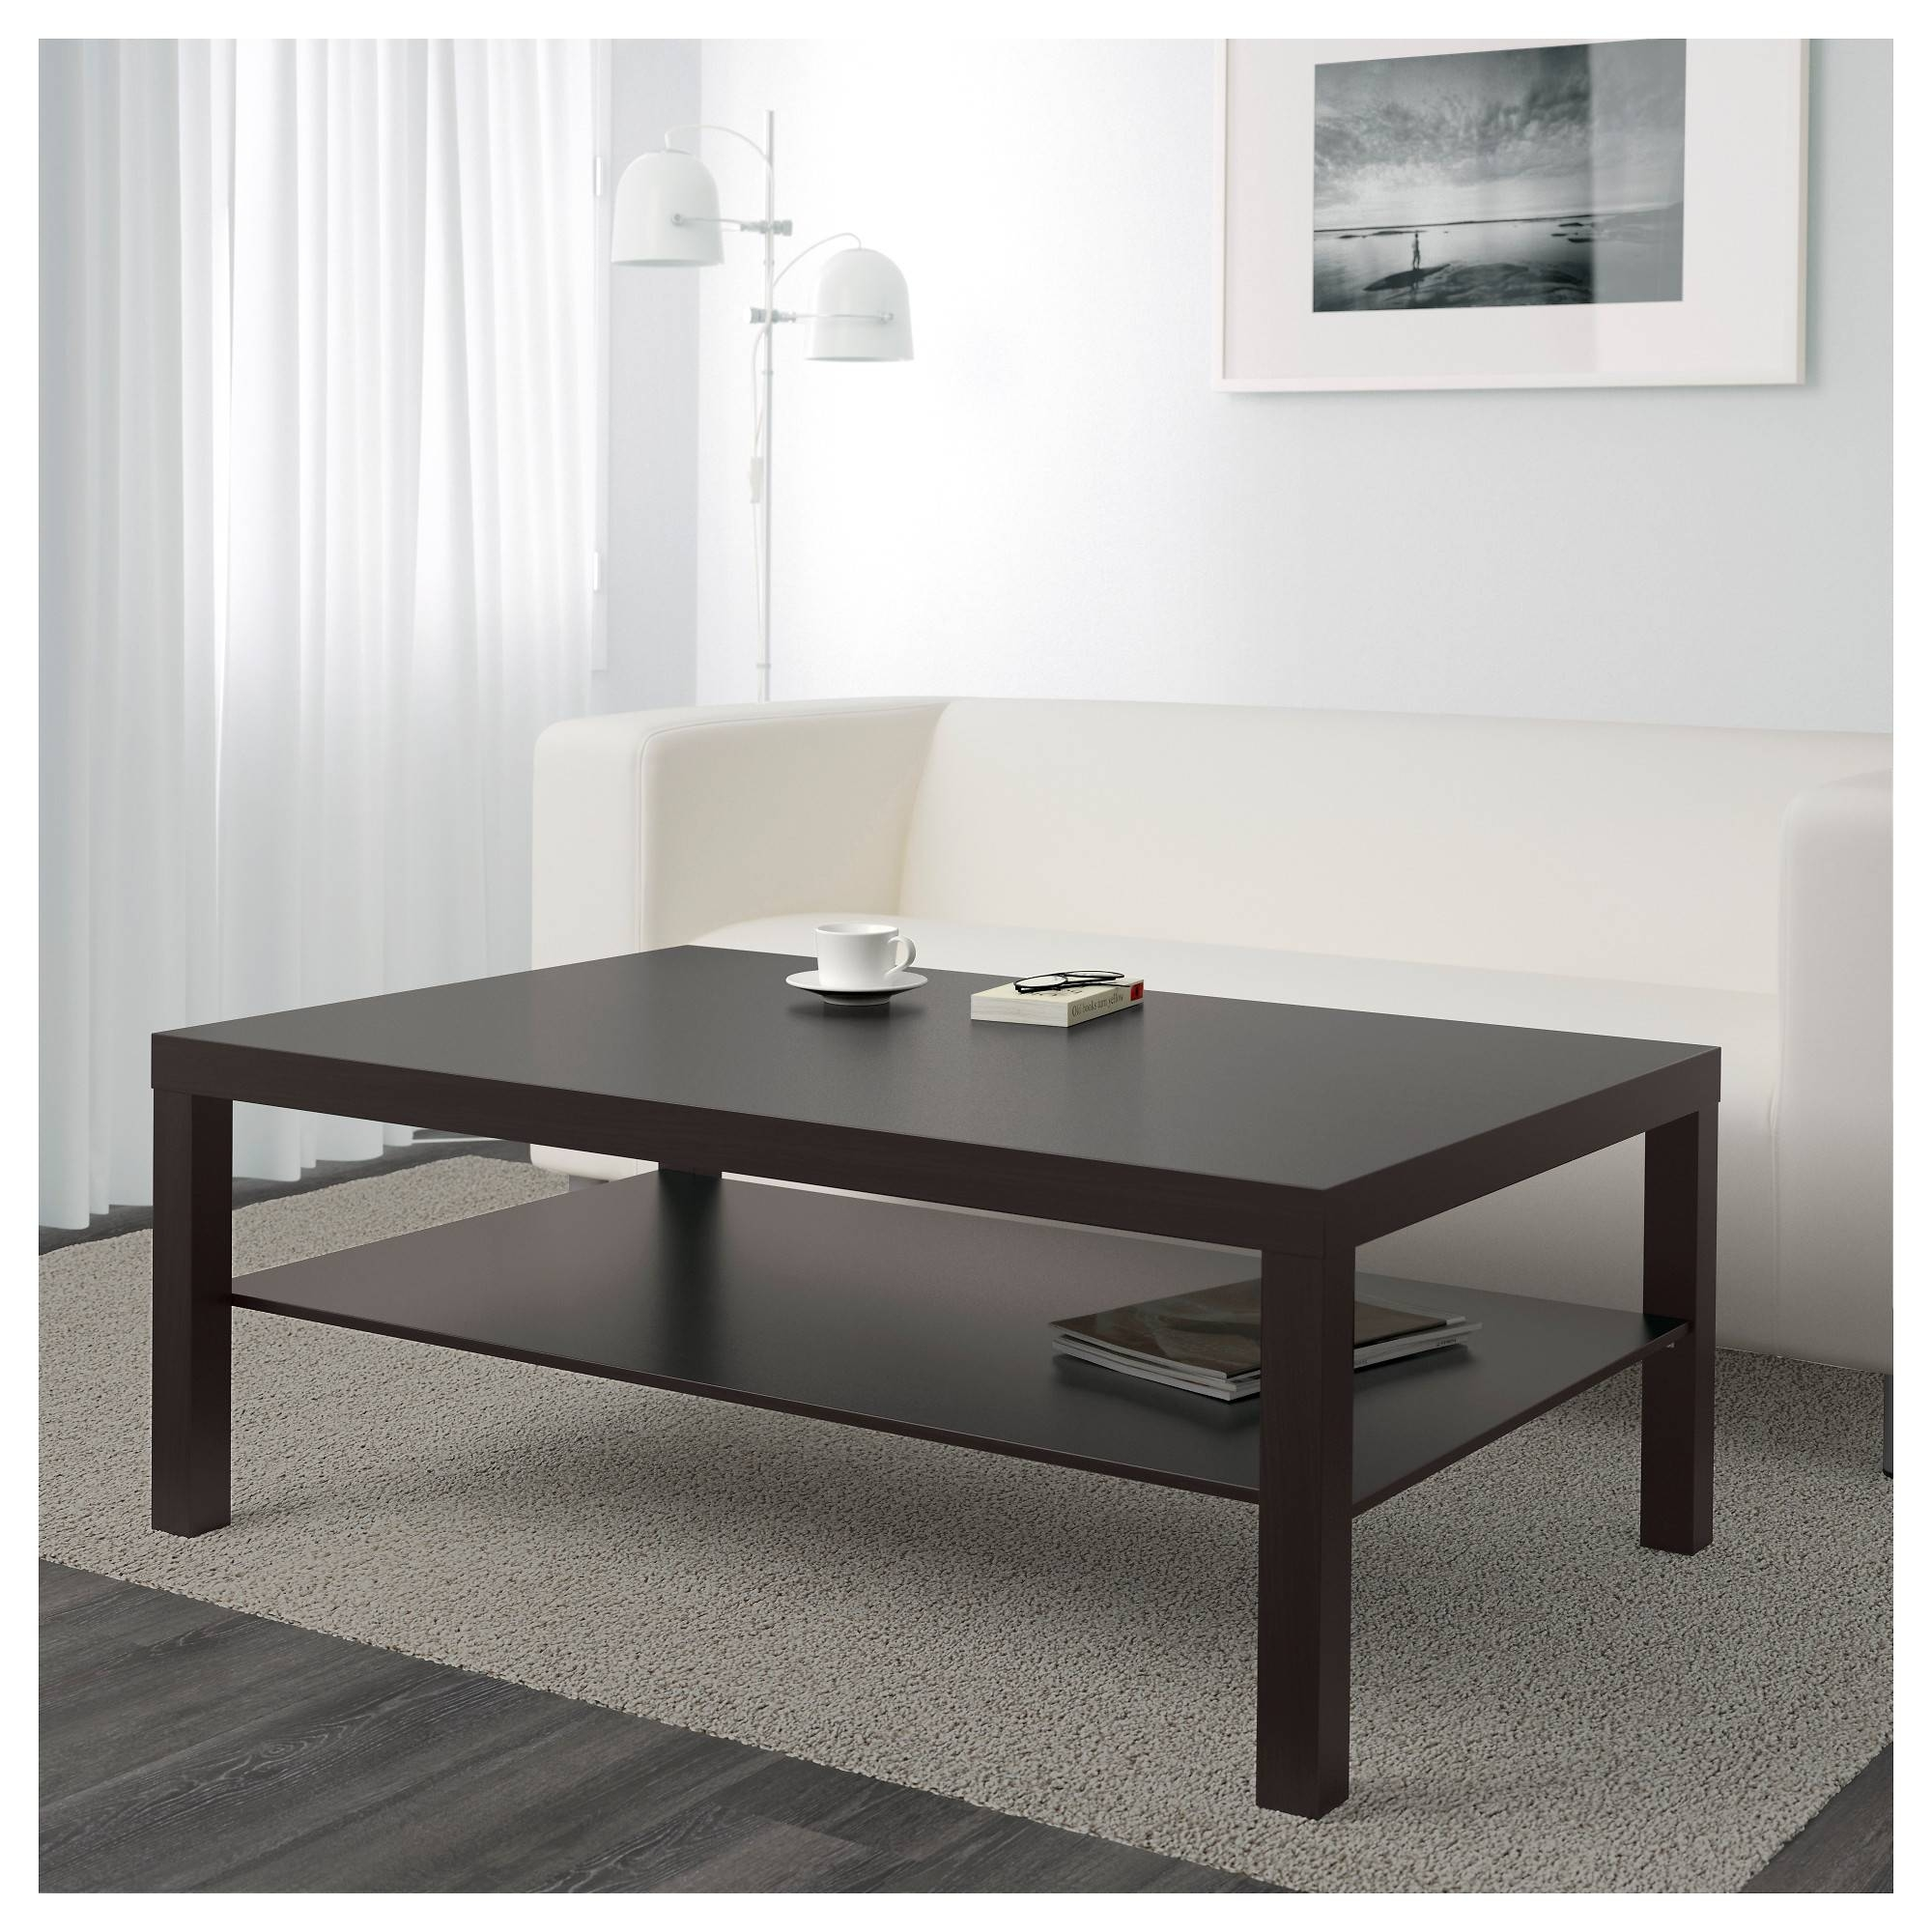 Lack Coffee Table - Black-Brown - Ikea with Dark Coffee Tables (Image 26 of 30)